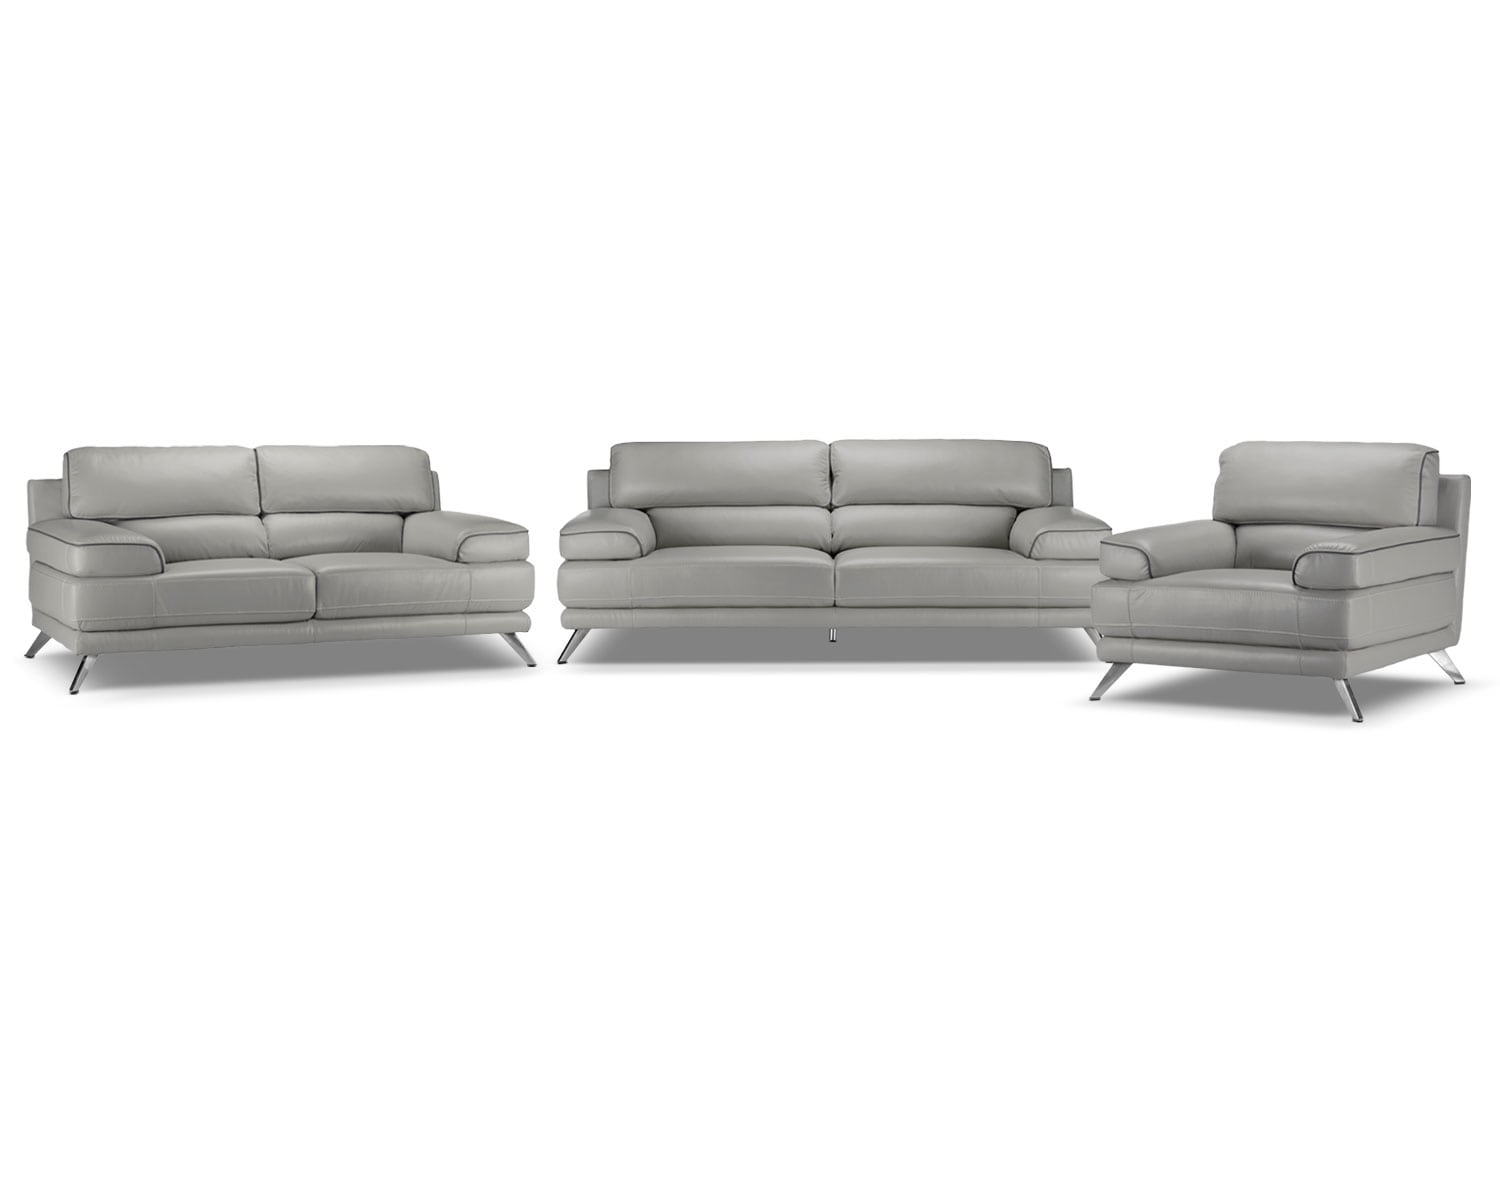 Sutton Sofa, Loveseat and Chair Set - Grey